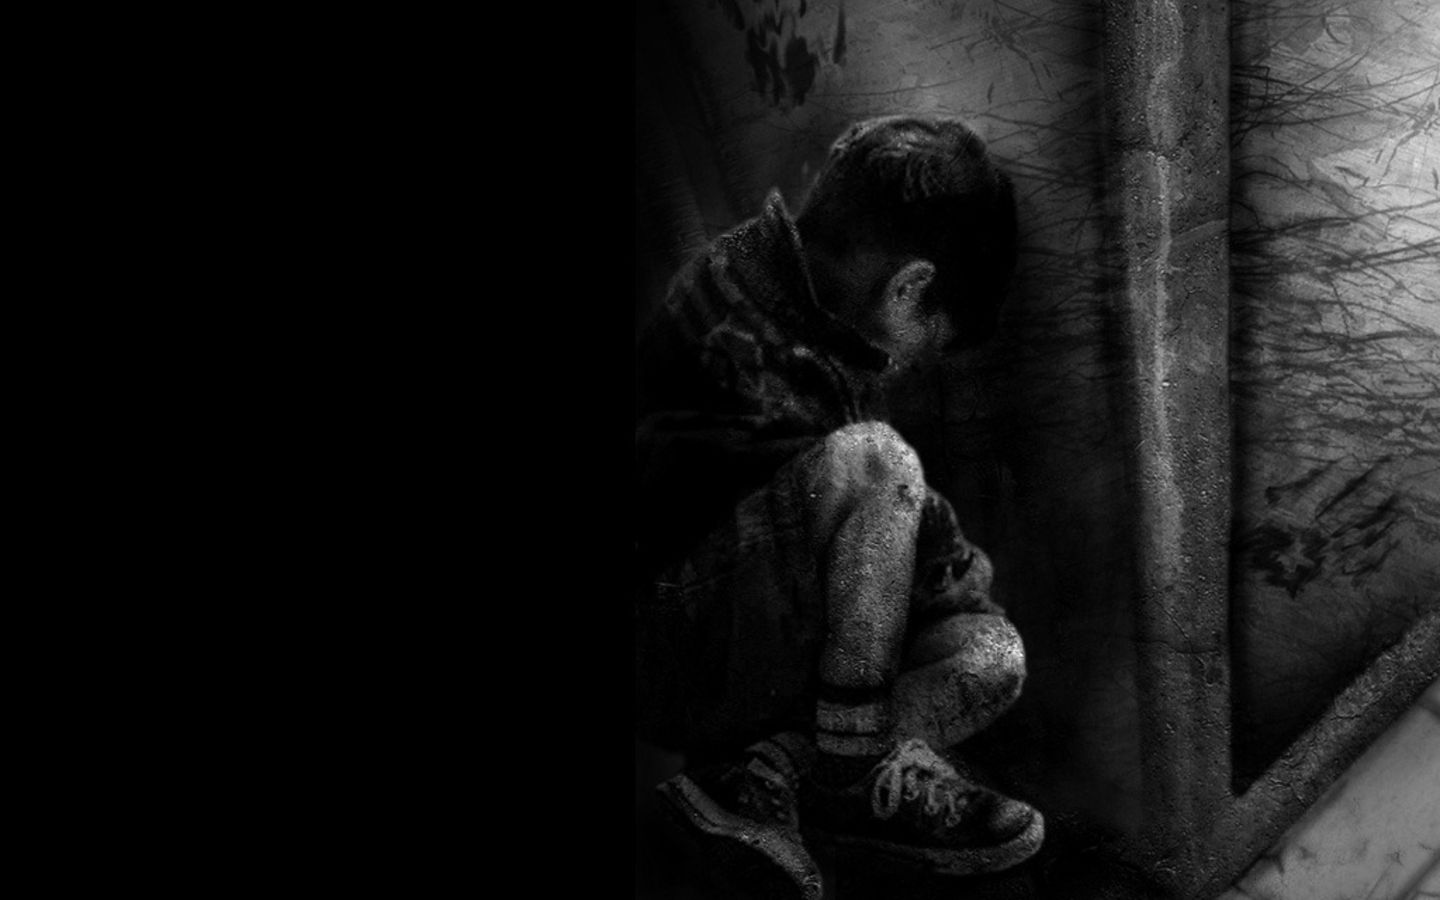 Sad black and white photography of people dark artistic boy lonely sad black dark wallpaper